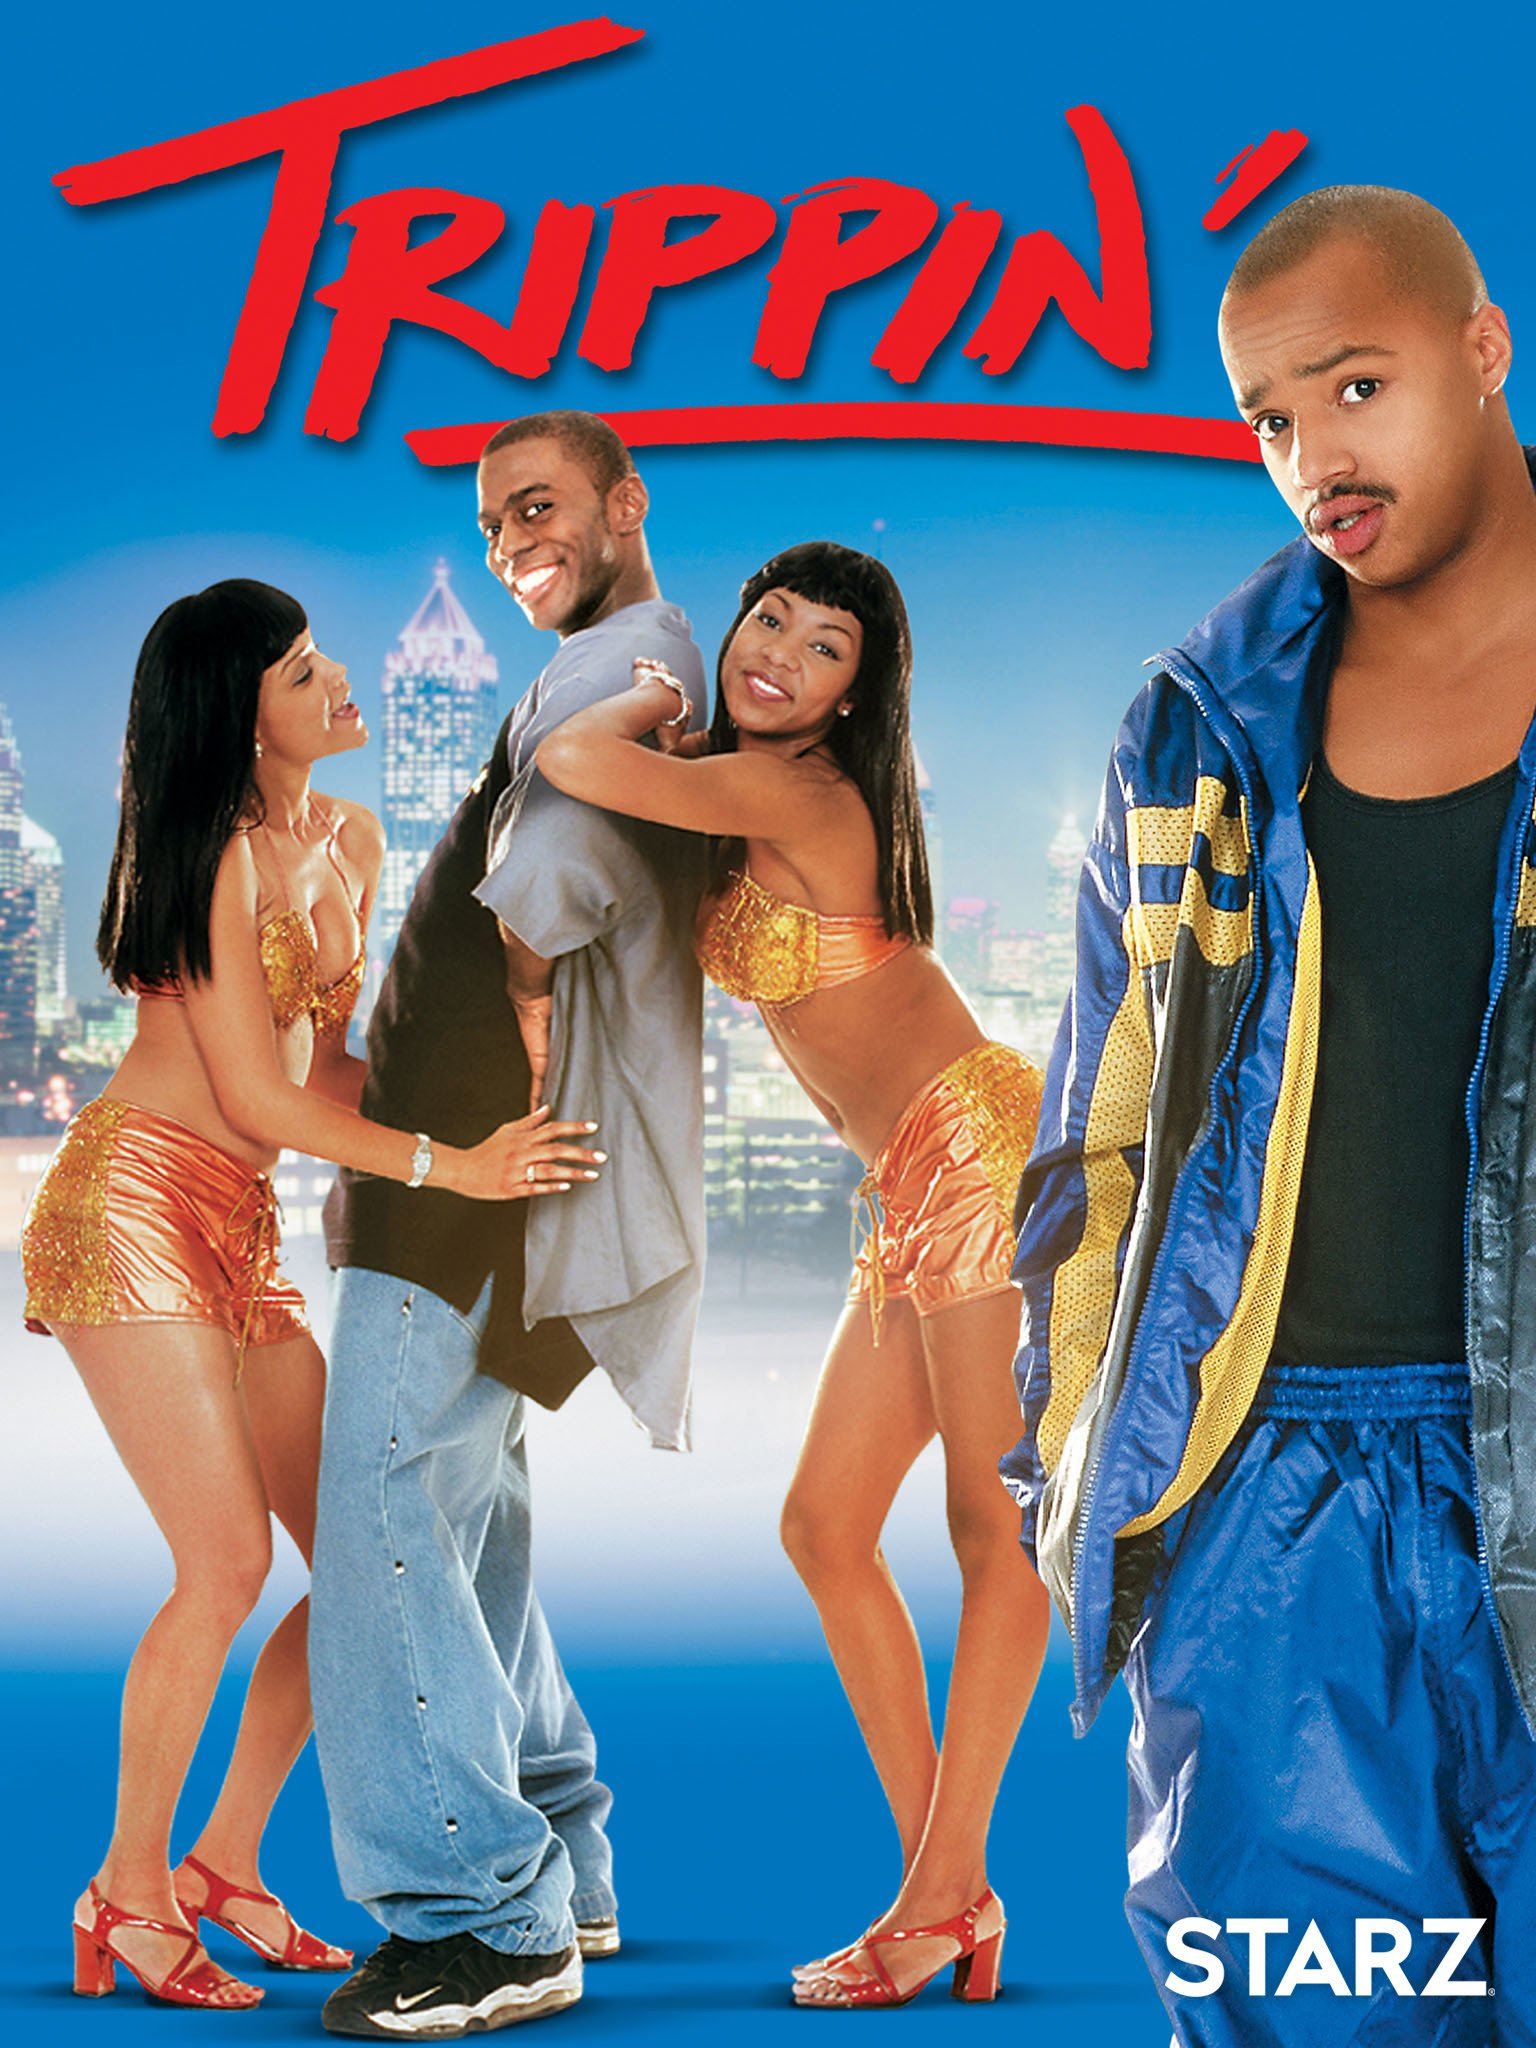 Trippin' (1999) Main Poster